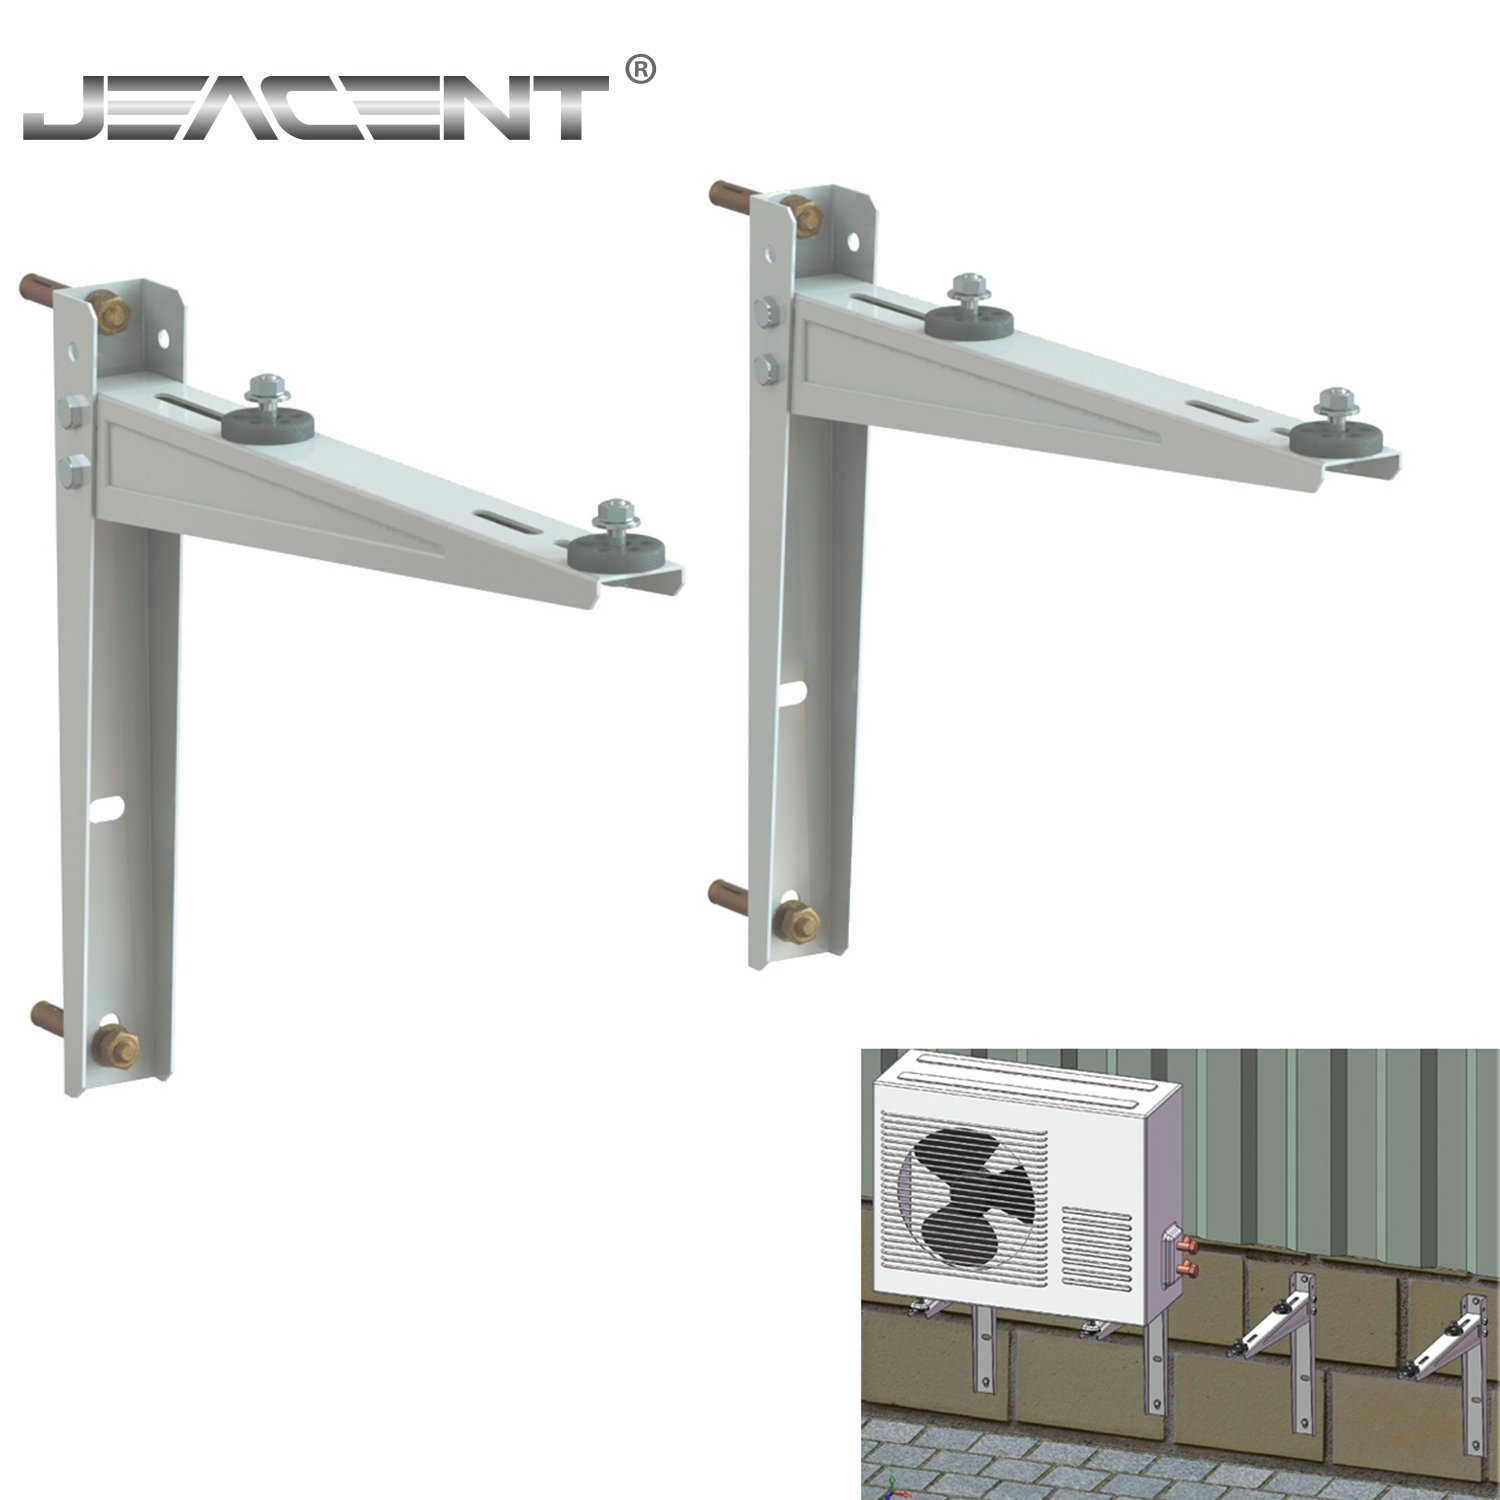 Mini Split Wall Mounting Bracket for Ductless Air Conditioner 7,000-15,000BTU Condensers